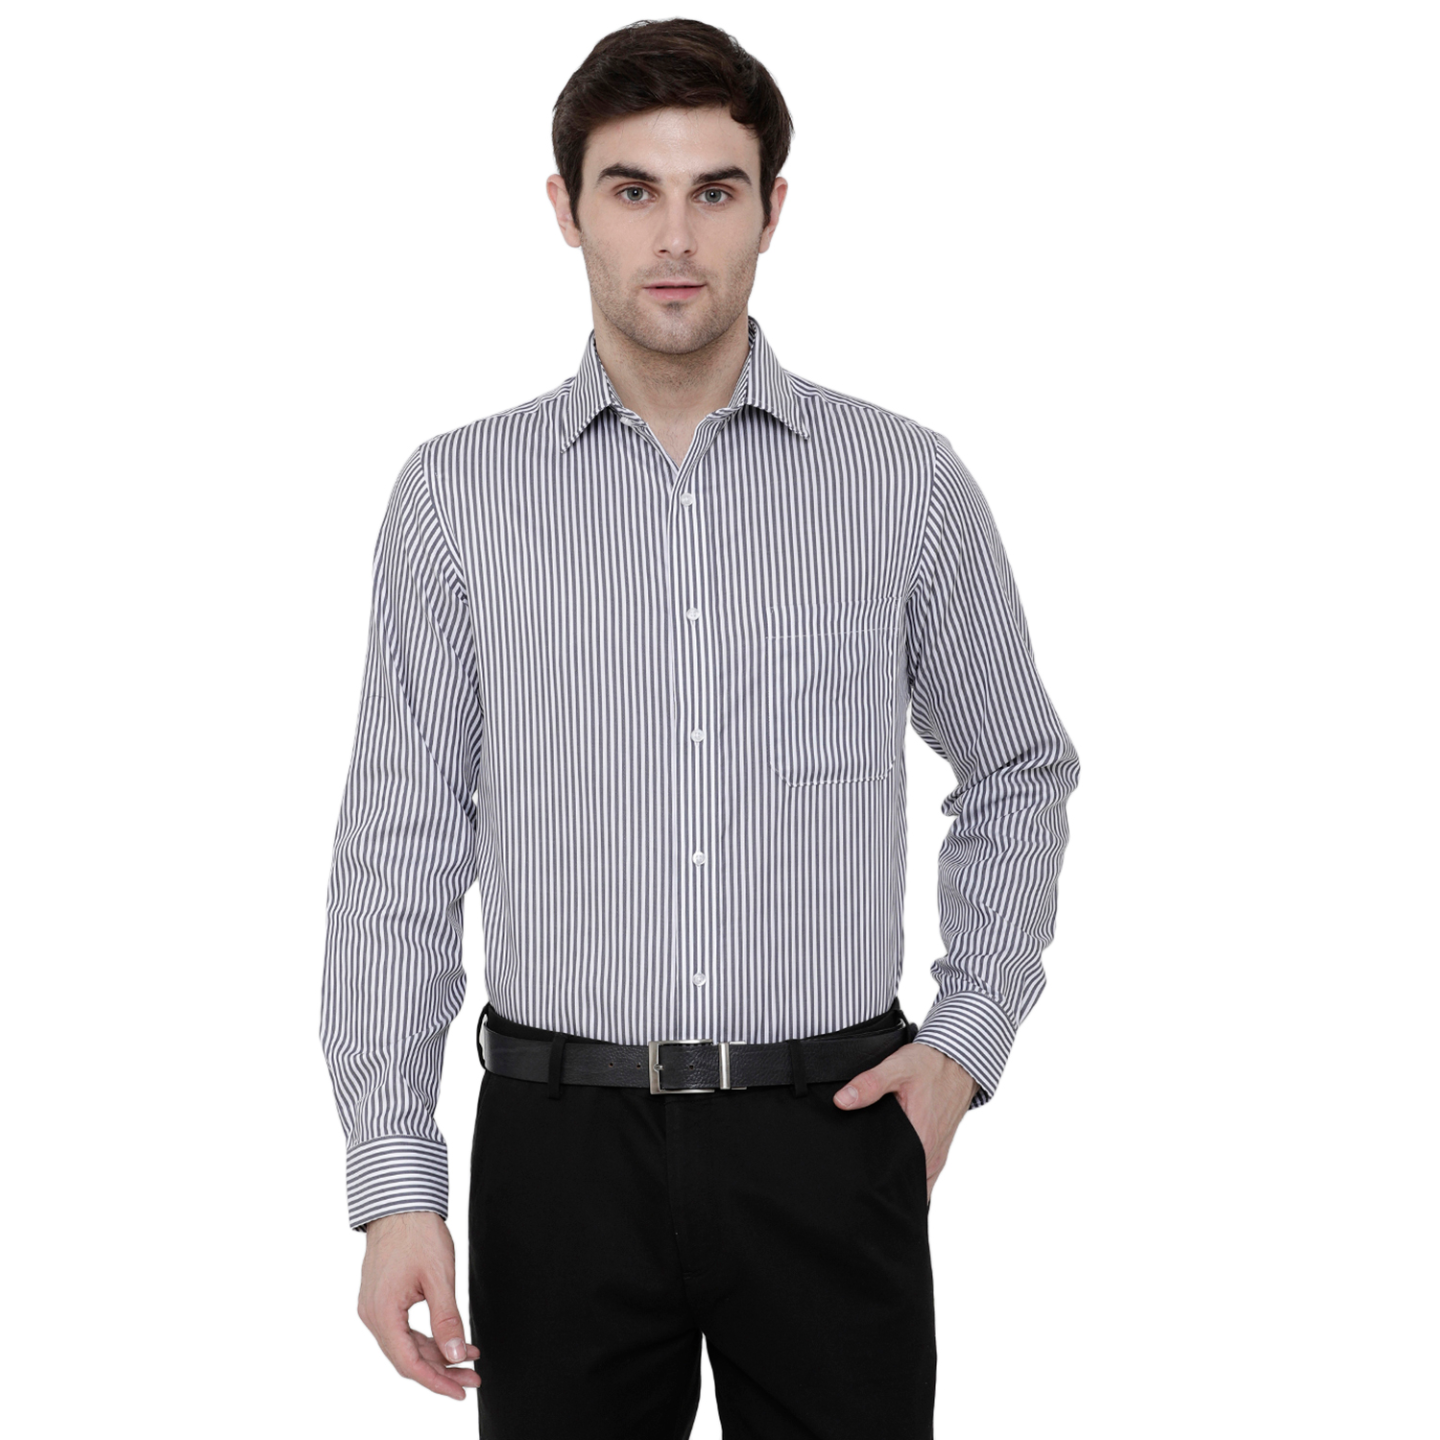 Double TWO Paradigm Men's Striped Charcoal Pure Cotton Non-Iron Shirt